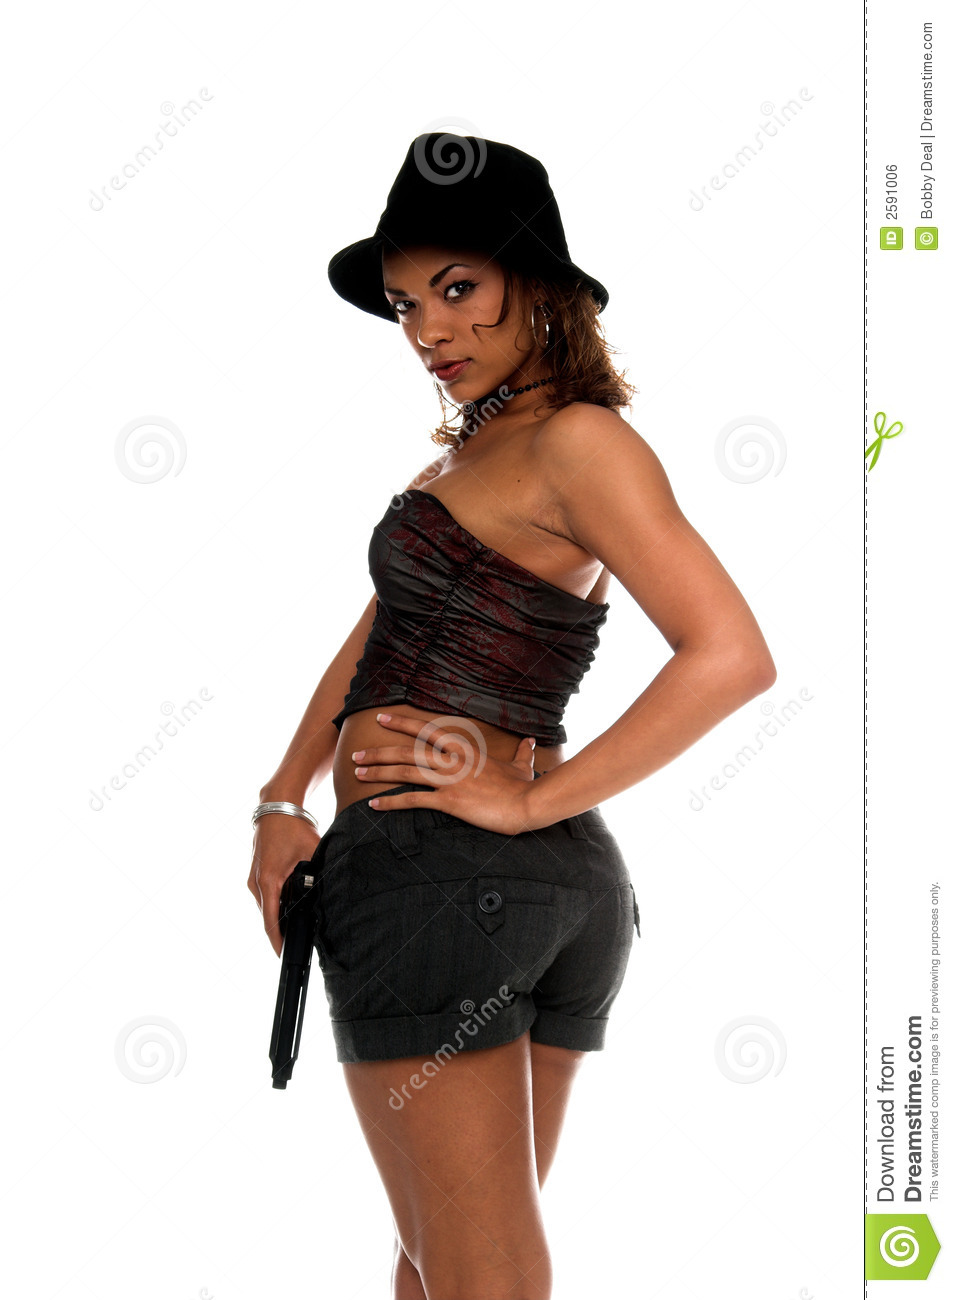 dangerous gangster girl royalty free stock image   image